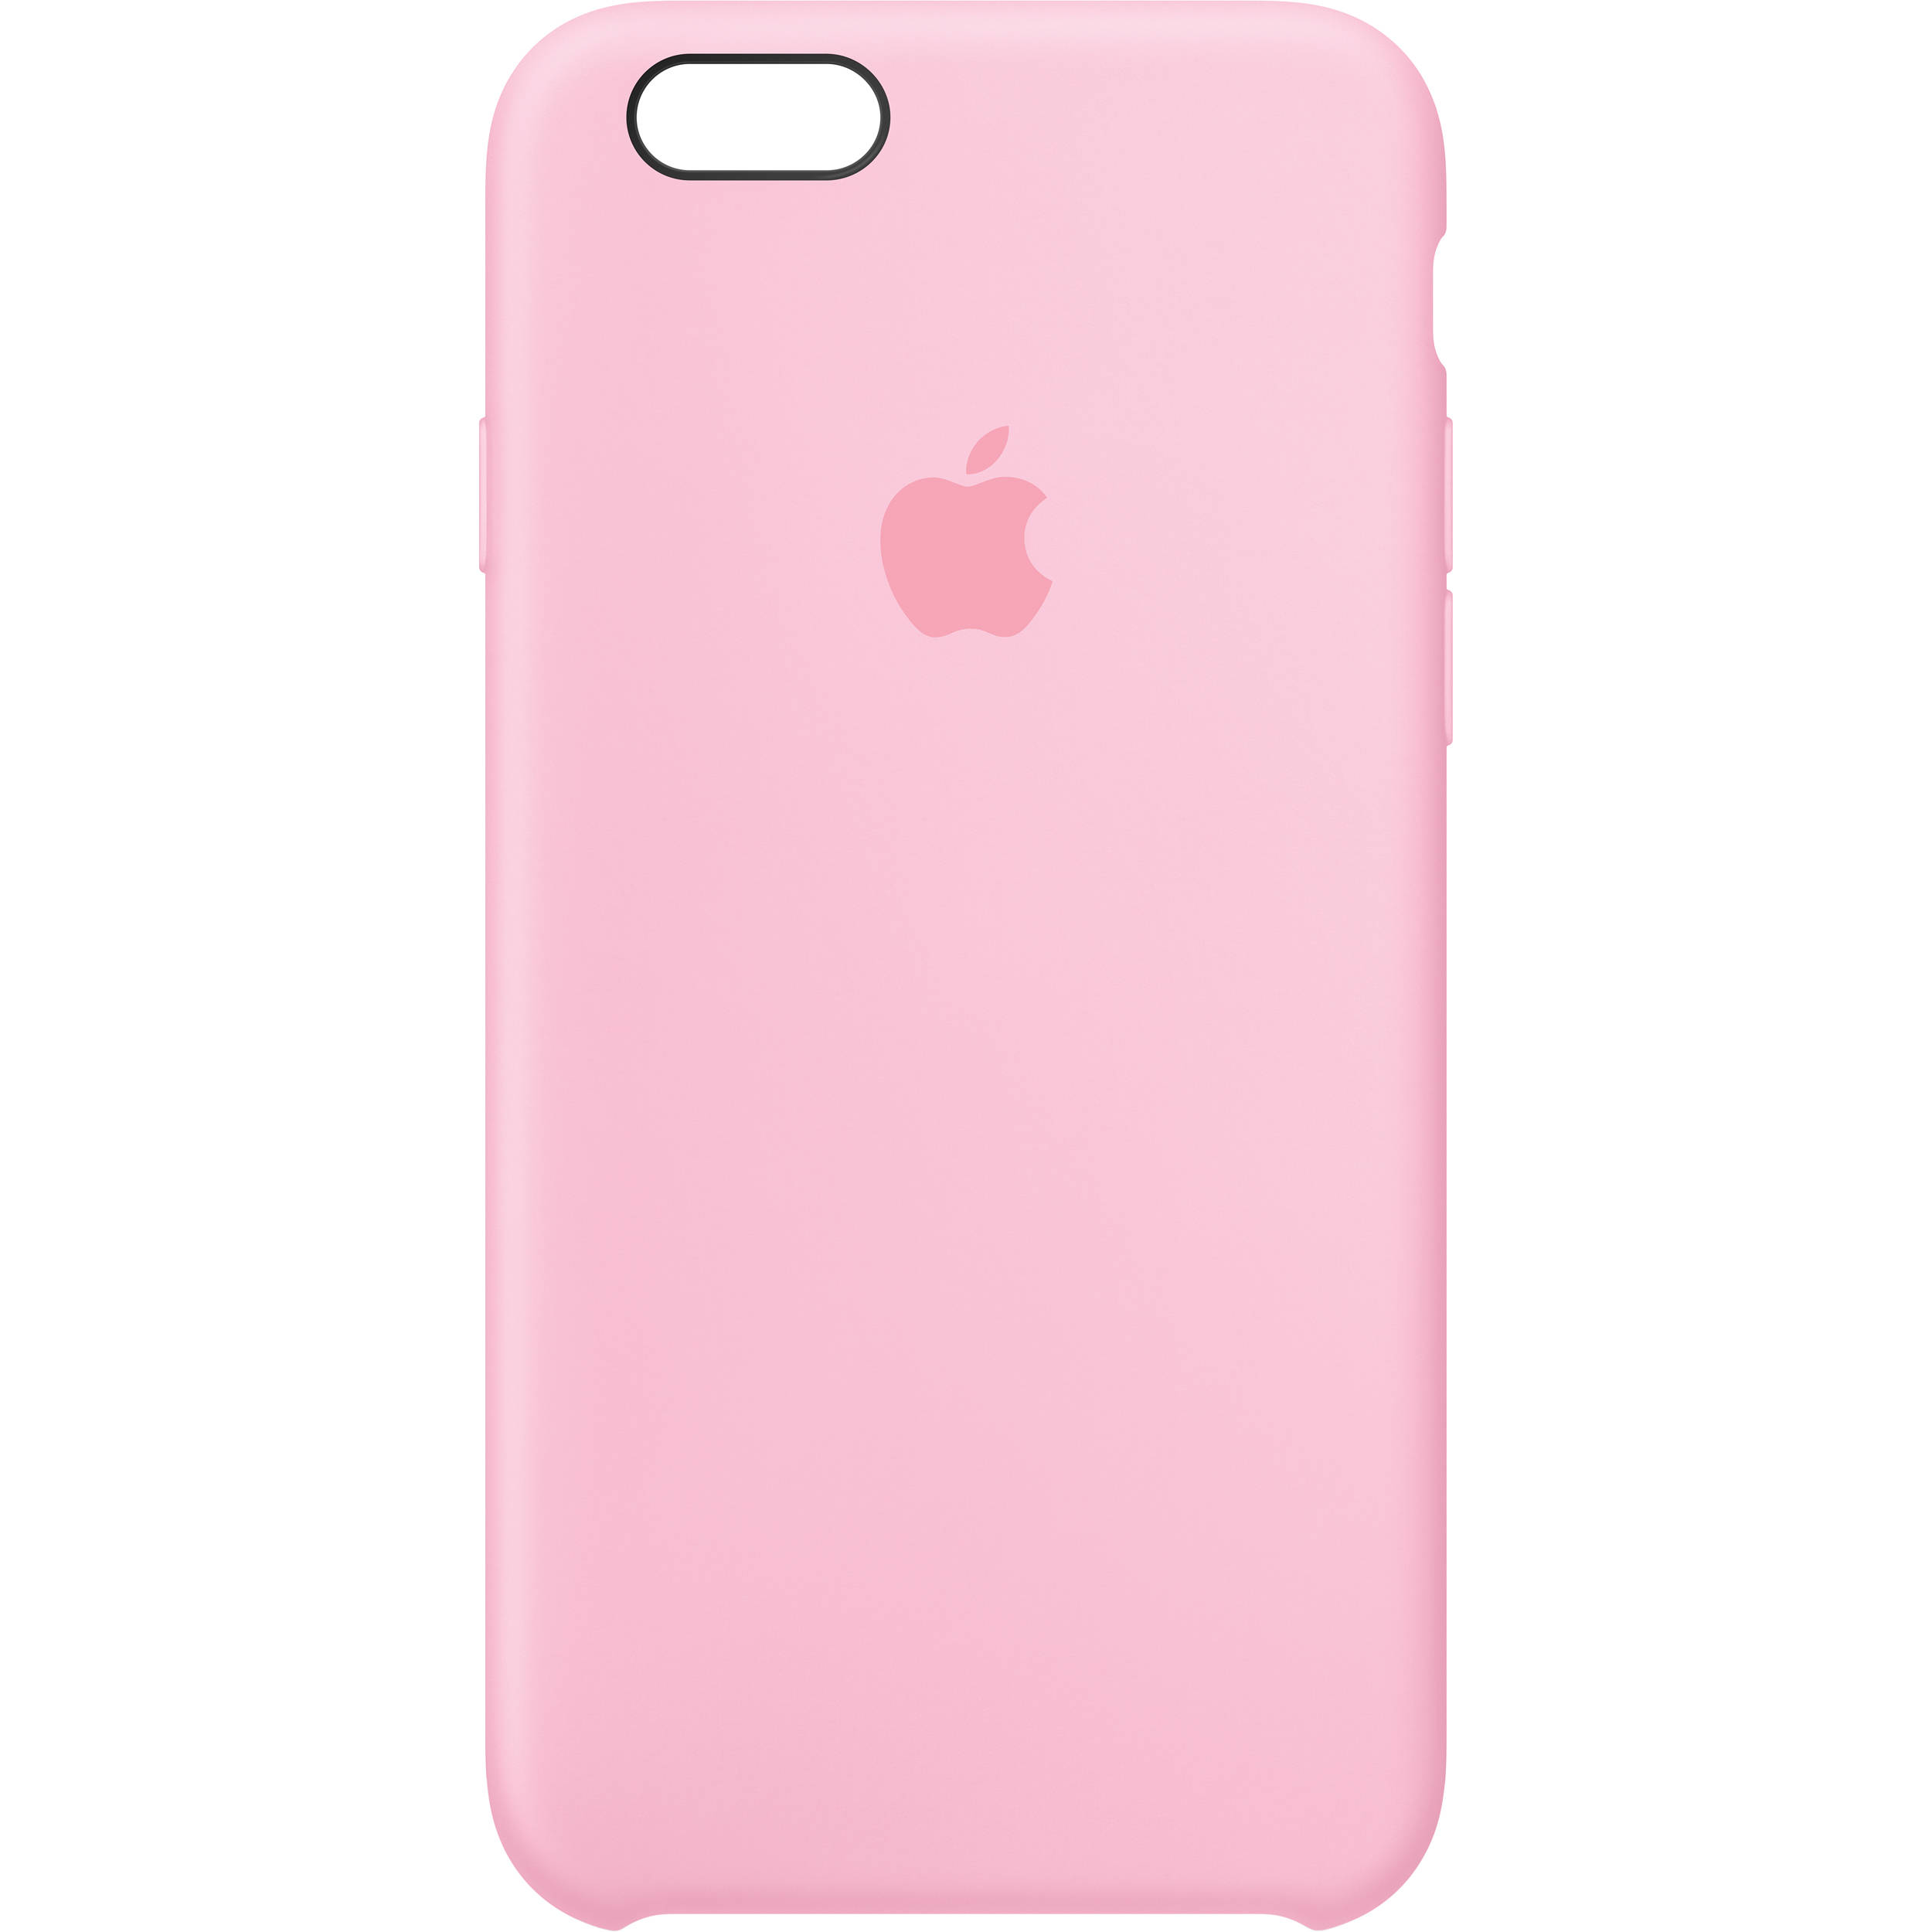 Apple iPhone 6/6s Silicone Case (Light Pink) MM622ZM/A B&H Photo